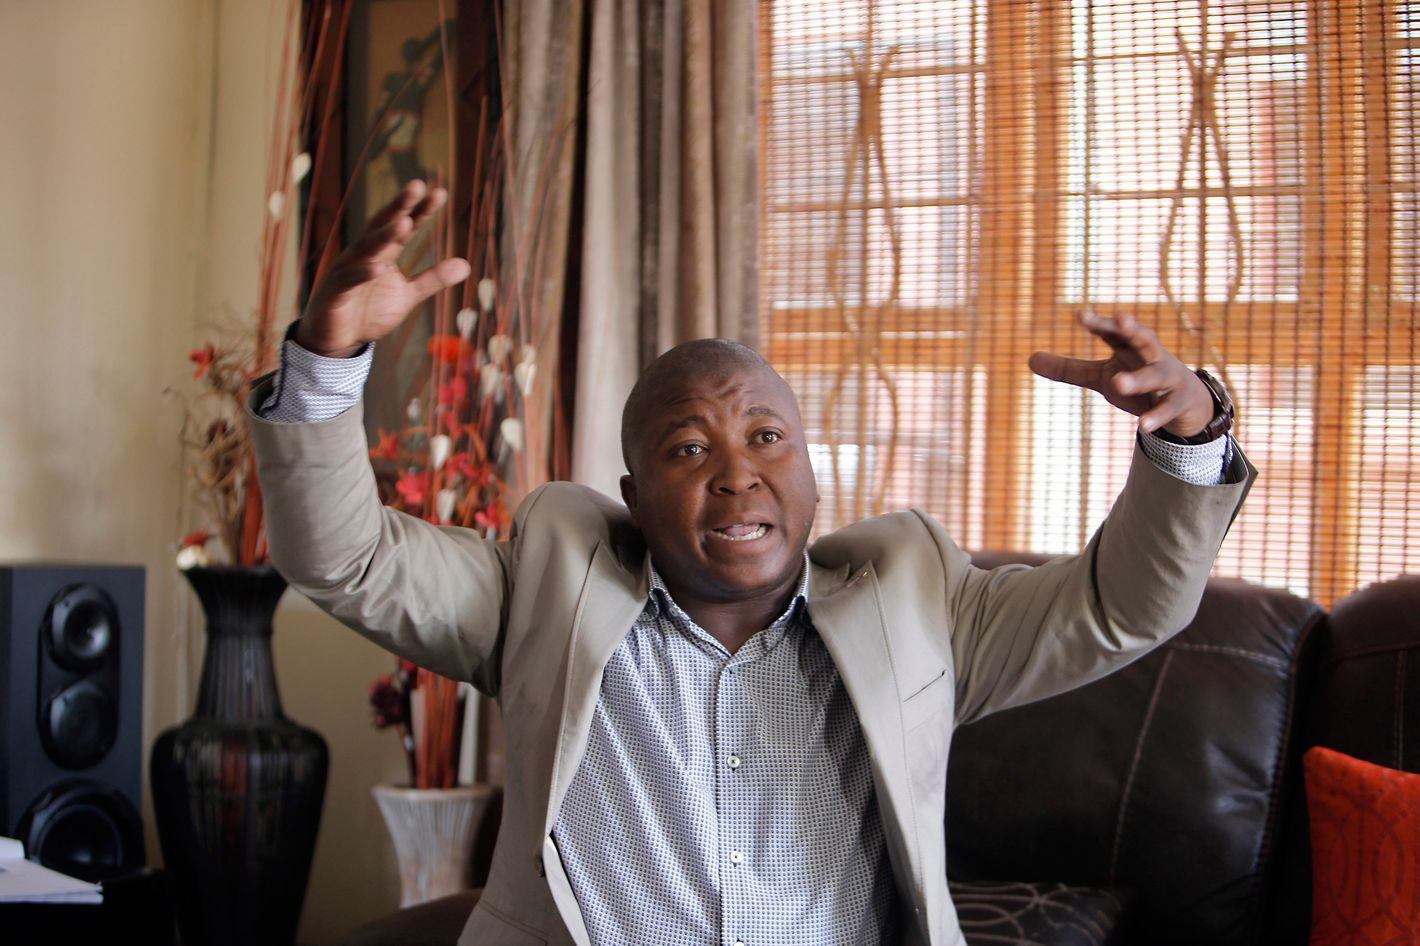 Thamsanqa Jantjie gesticulates at his home during an interview with the Associated Press in Johannesburg, South Africa,Thursday, Dec. 12, 2013. Jantjie, the man accused of faking sign interpretation next to world leaders at Nelson Mandela's memorial, told a local newspaper that he was hallucinating and hearing voices.